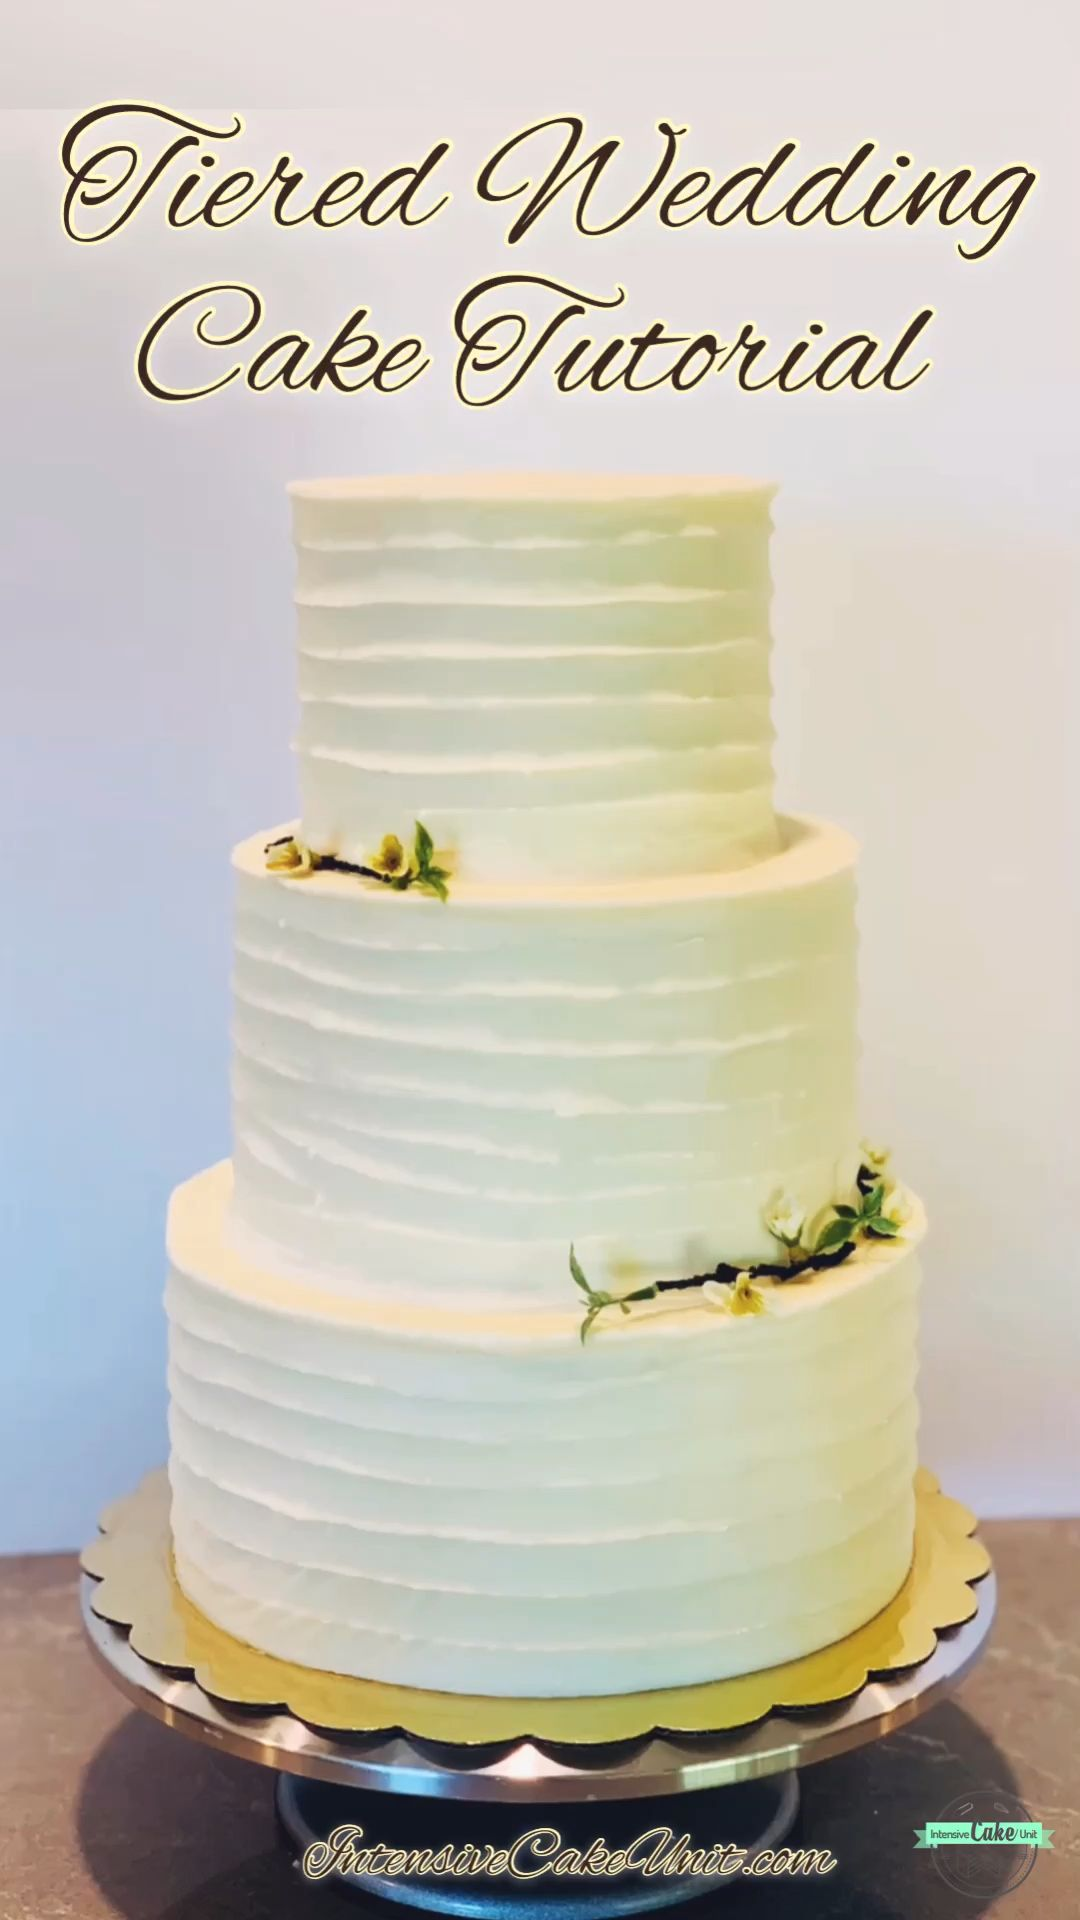 Tiered Cake Tutorial #cakedecoratingvideos